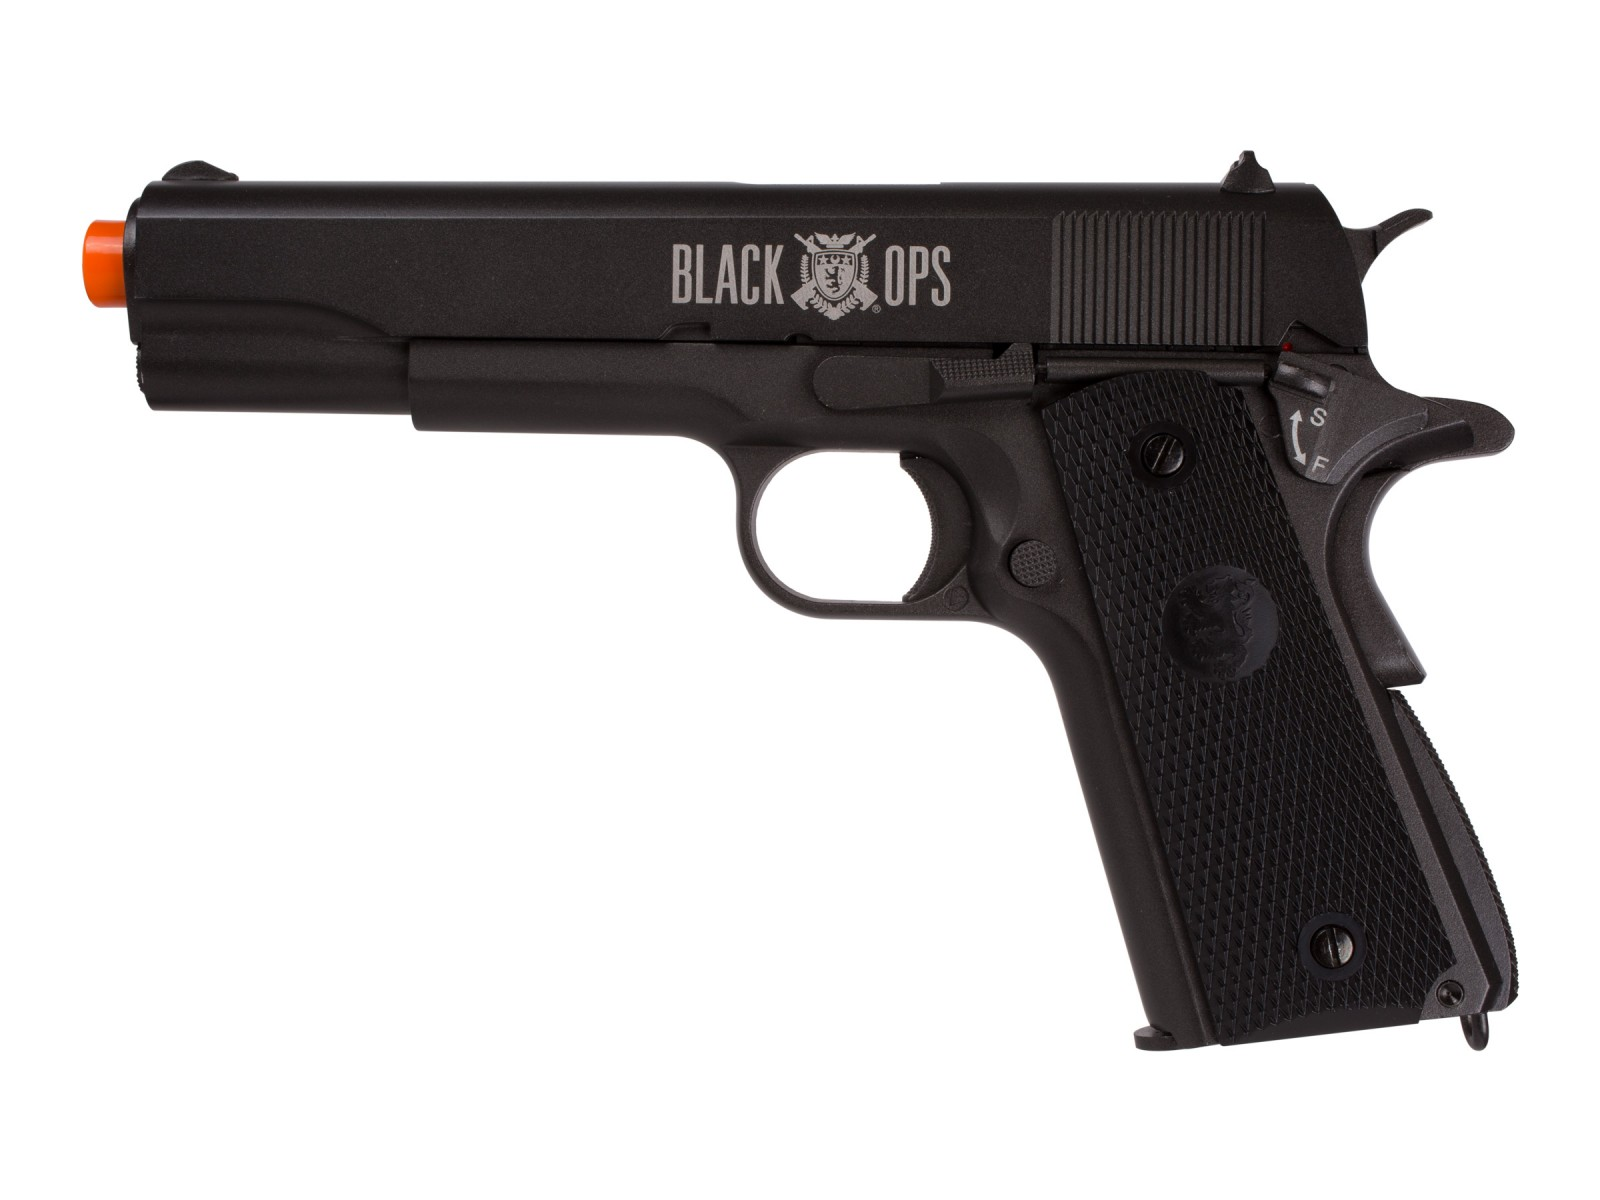 black ops 1911 co2 airsoft pistol full metal airsoft guns